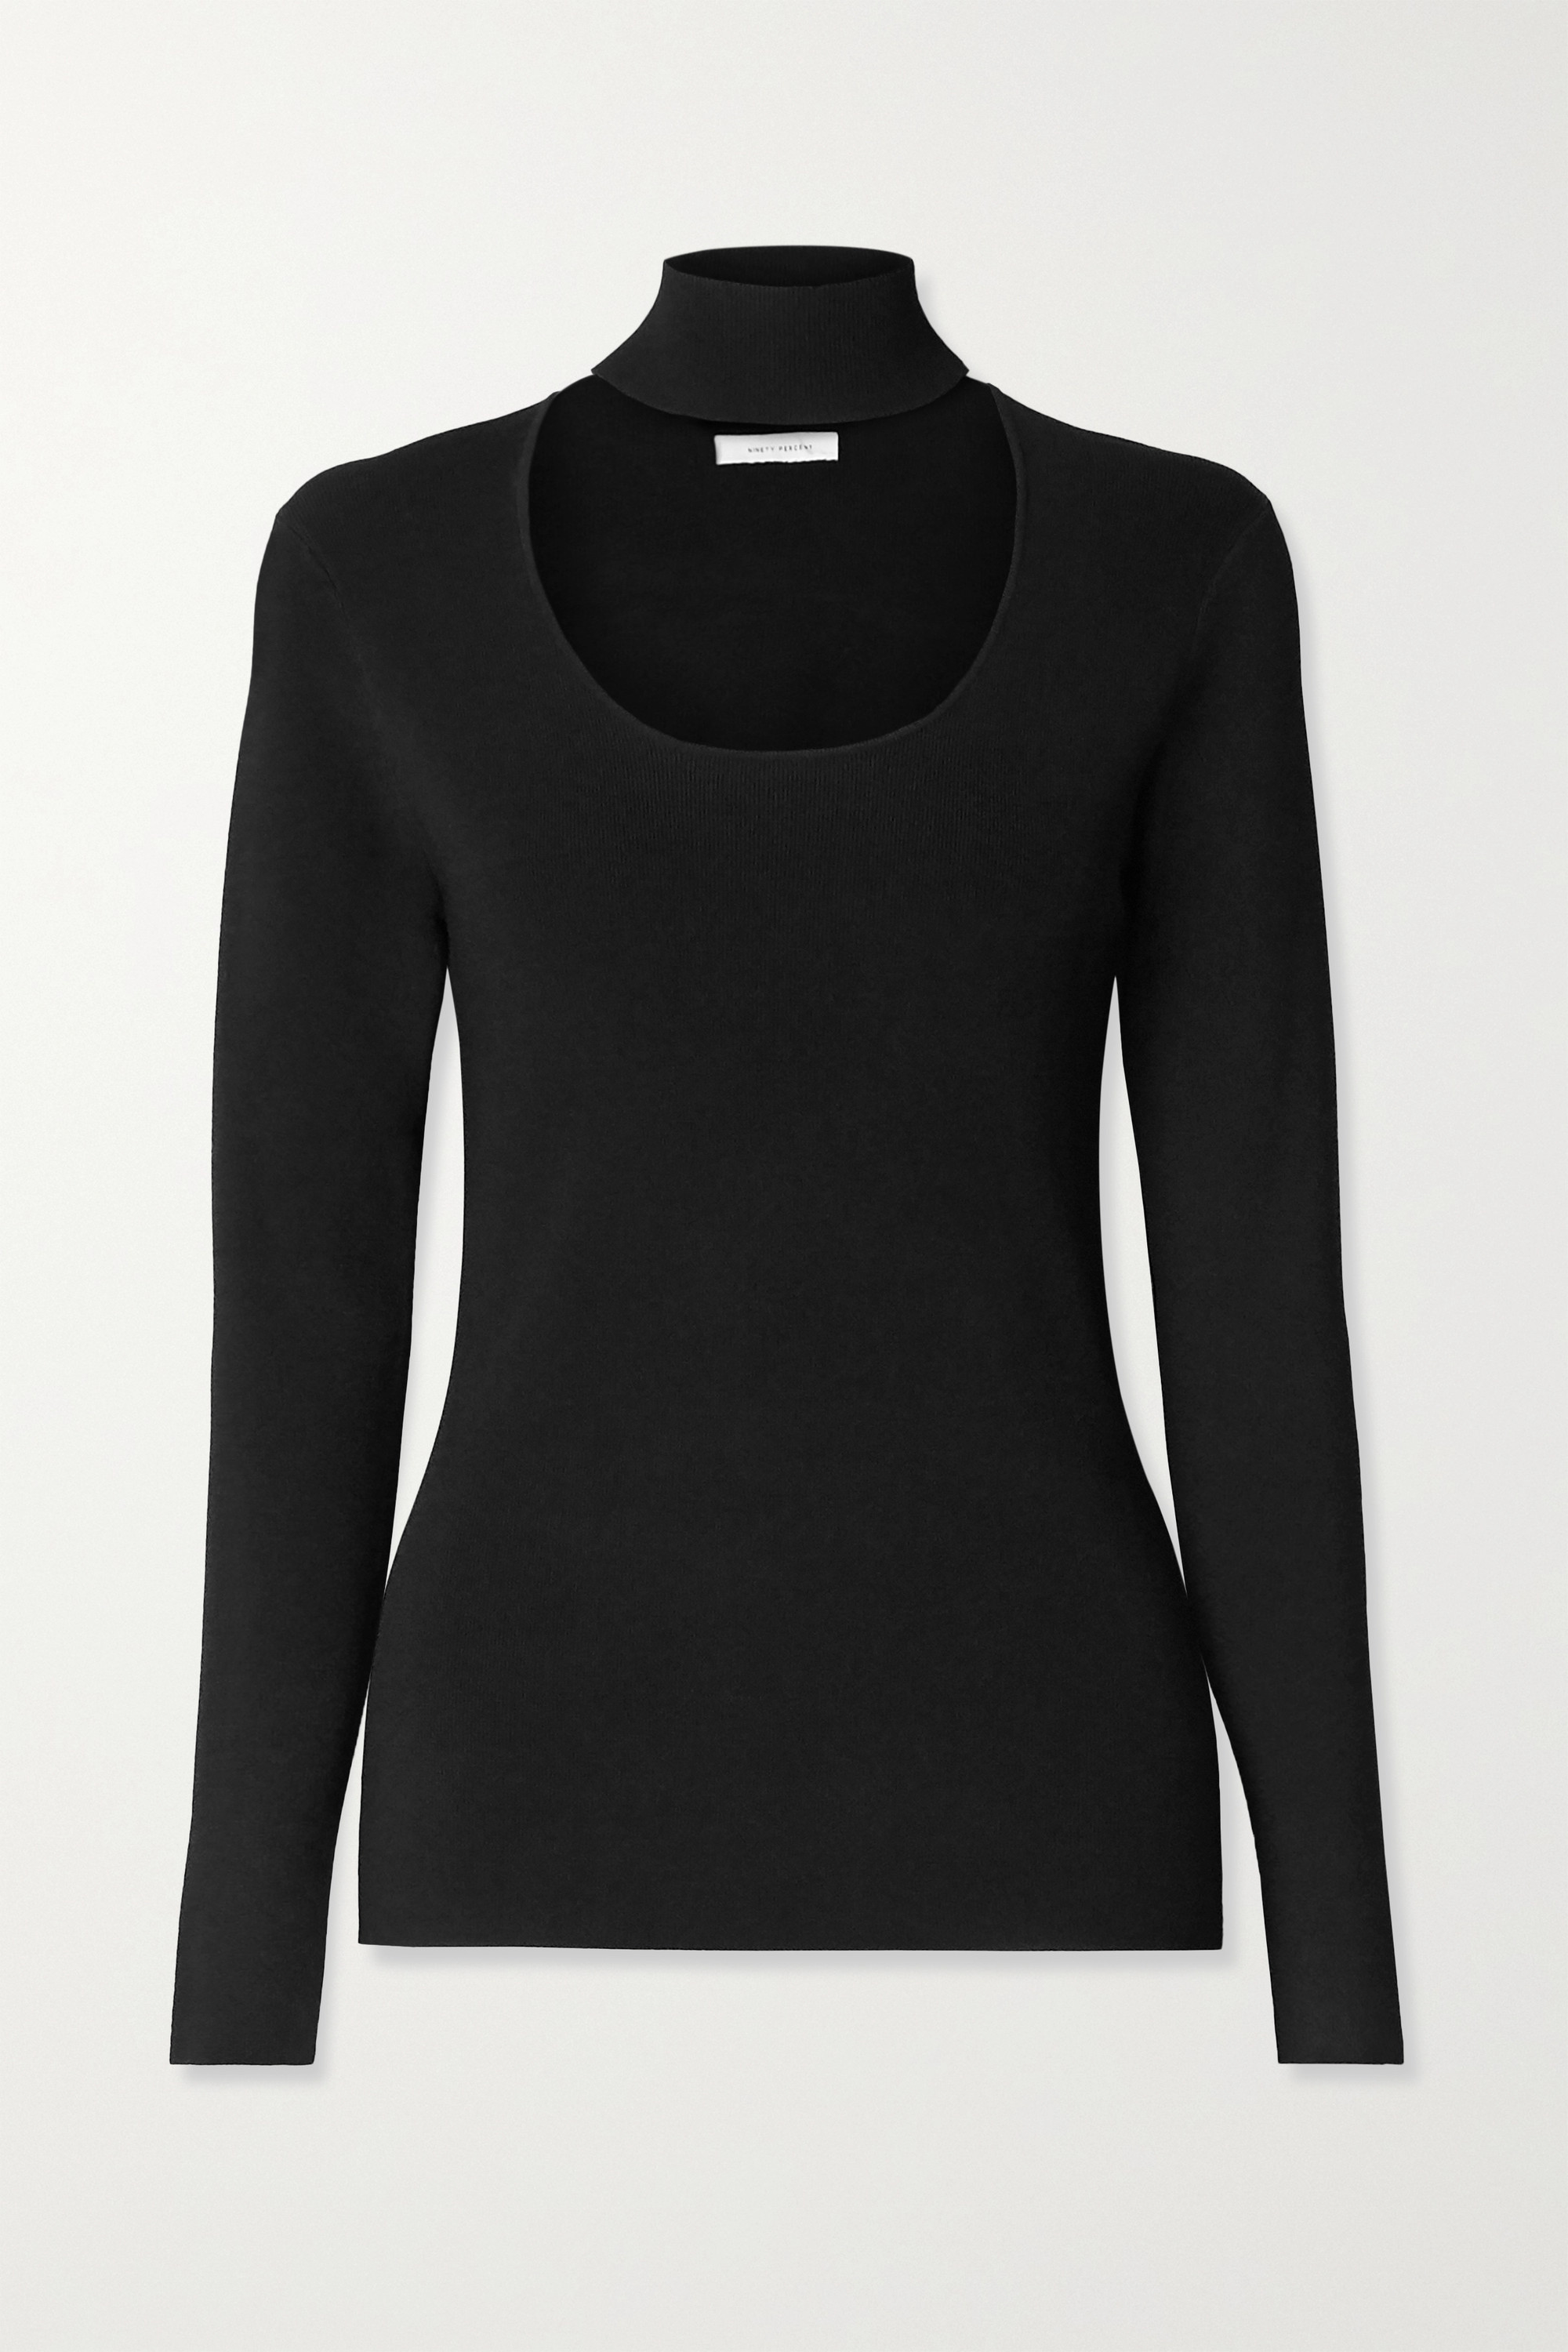 Ninety Percent Cutout stretch-knit turtleneck sweater